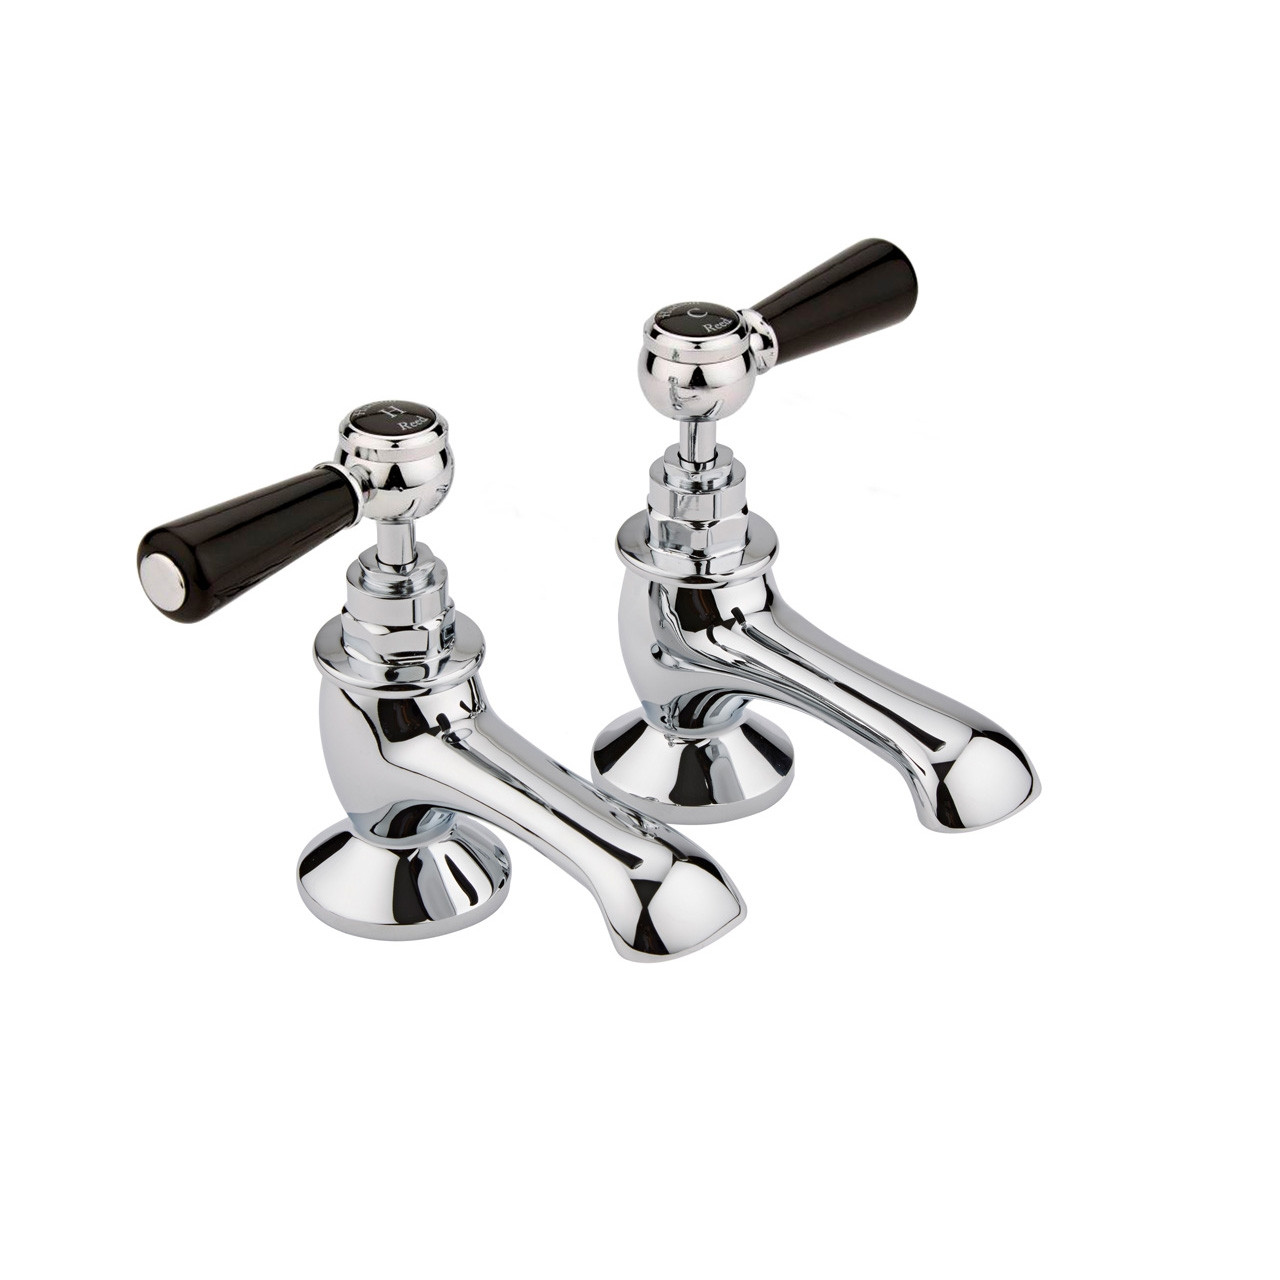 Hudson Reed Topaz Black Lever Bath Taps with Hex Collar - BC402HL